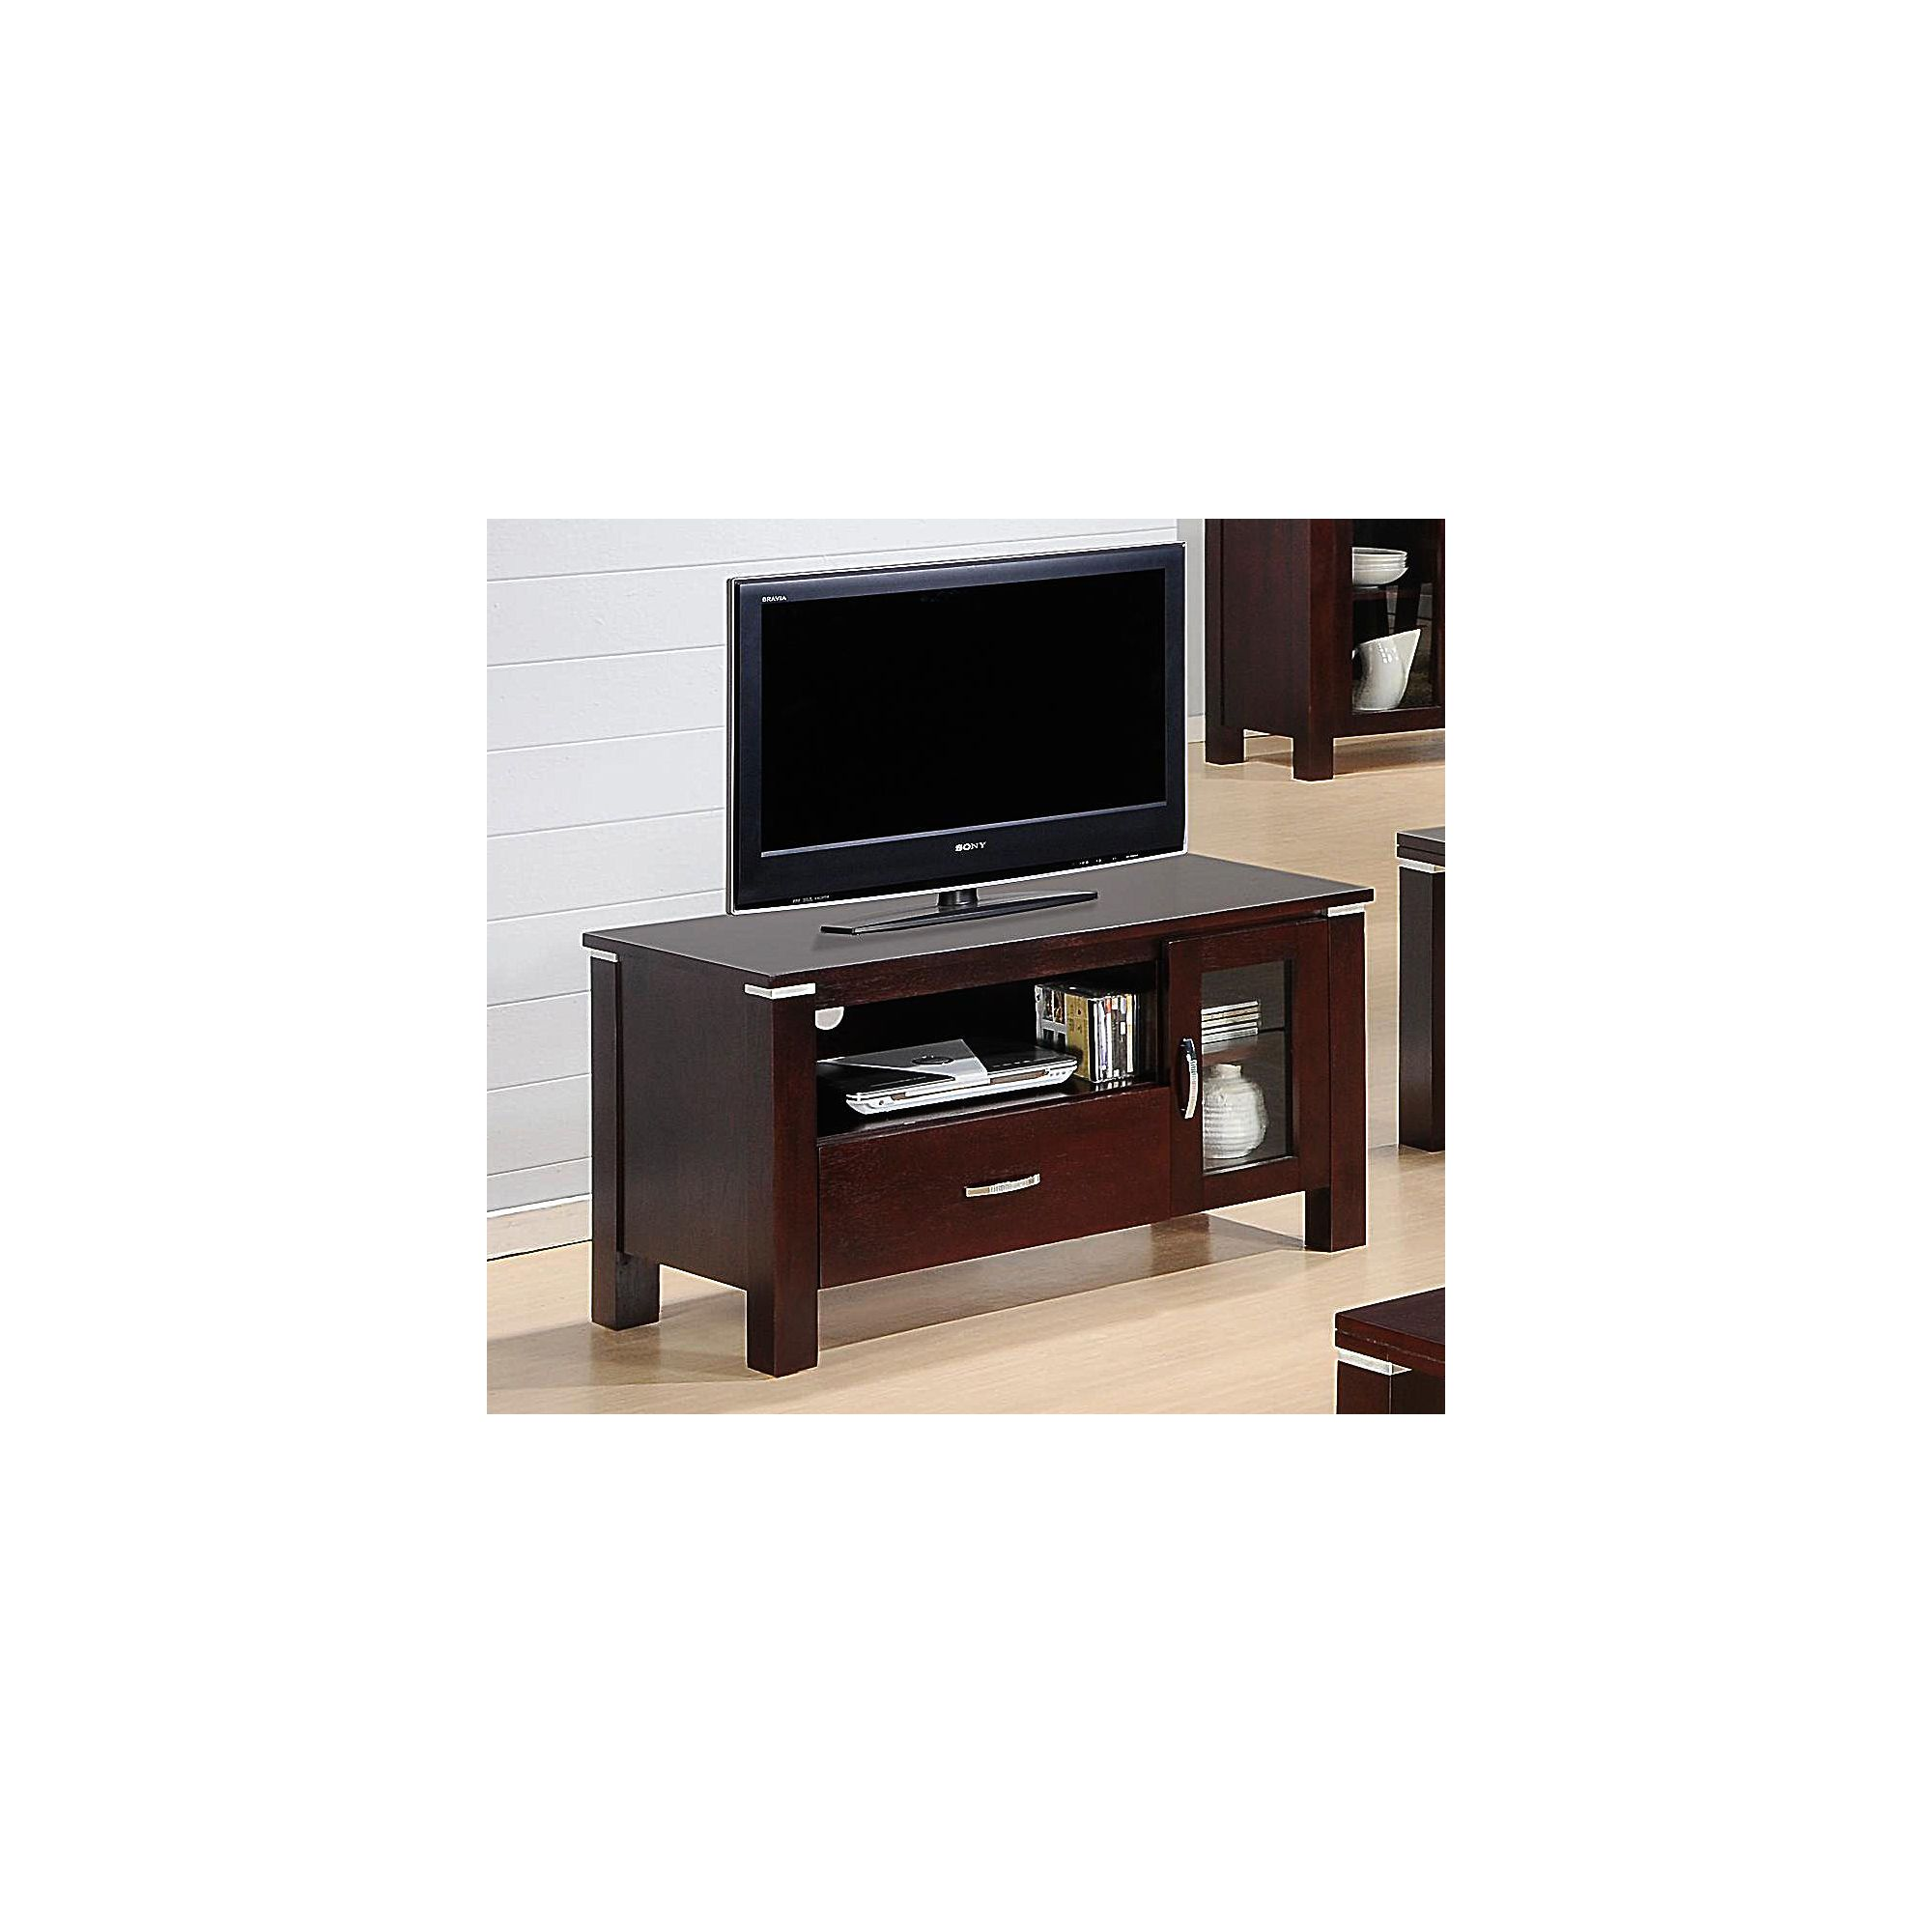 Heartlands Furniture Spartan Wooden TV Cabinet for LCDs at Tesco Direct